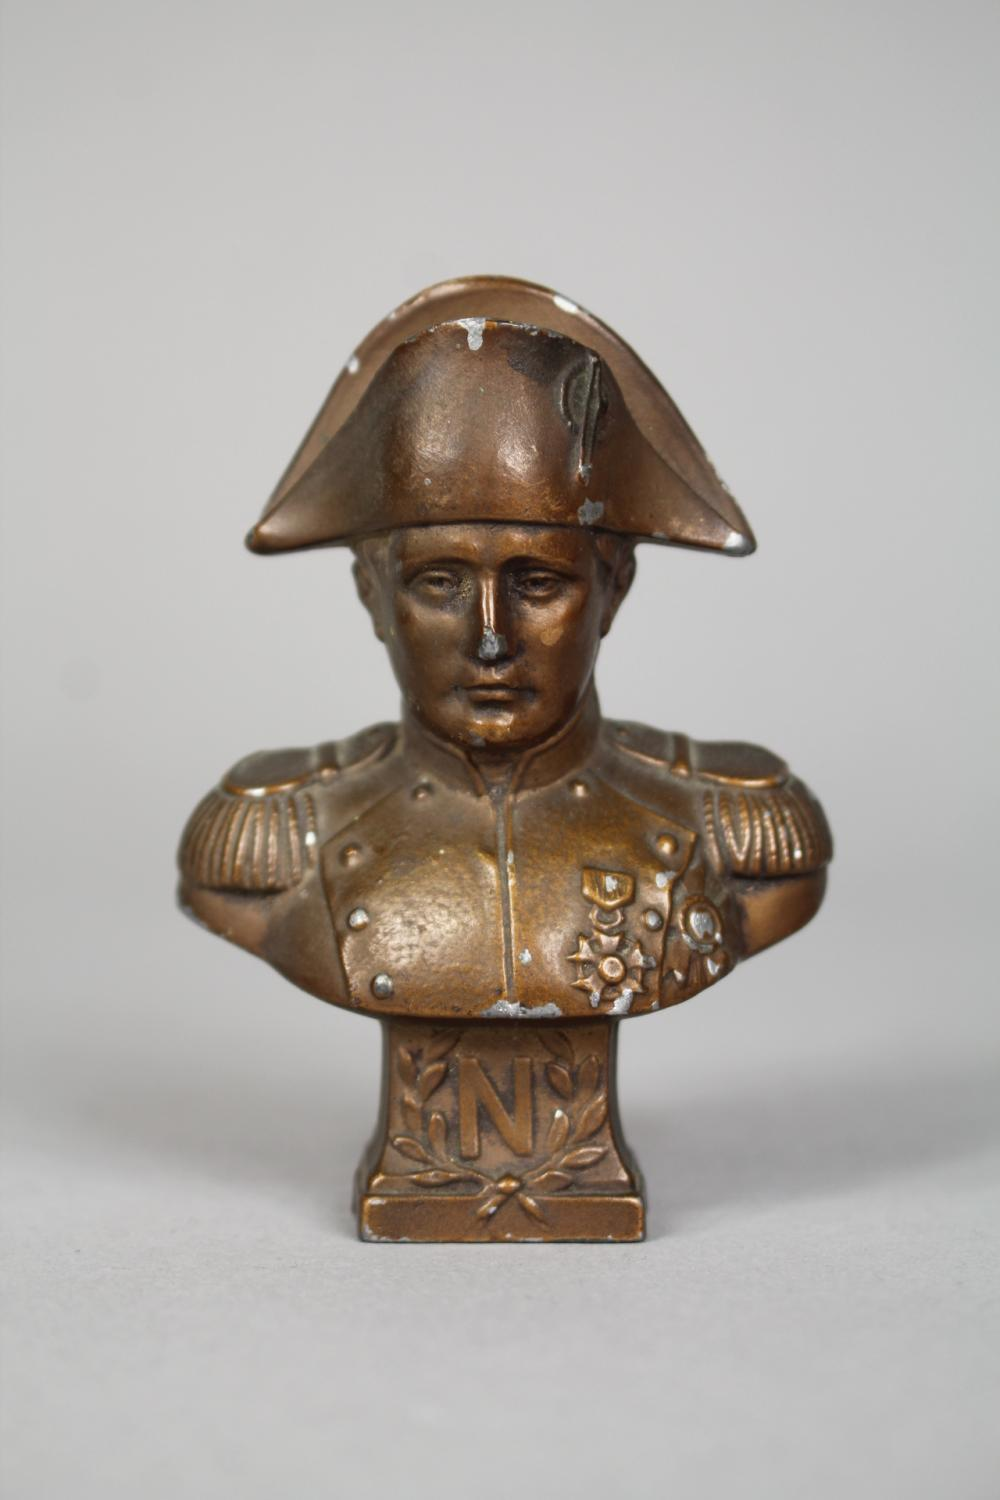 Miniature spelter Napoleon bust, approx 7.5cm H